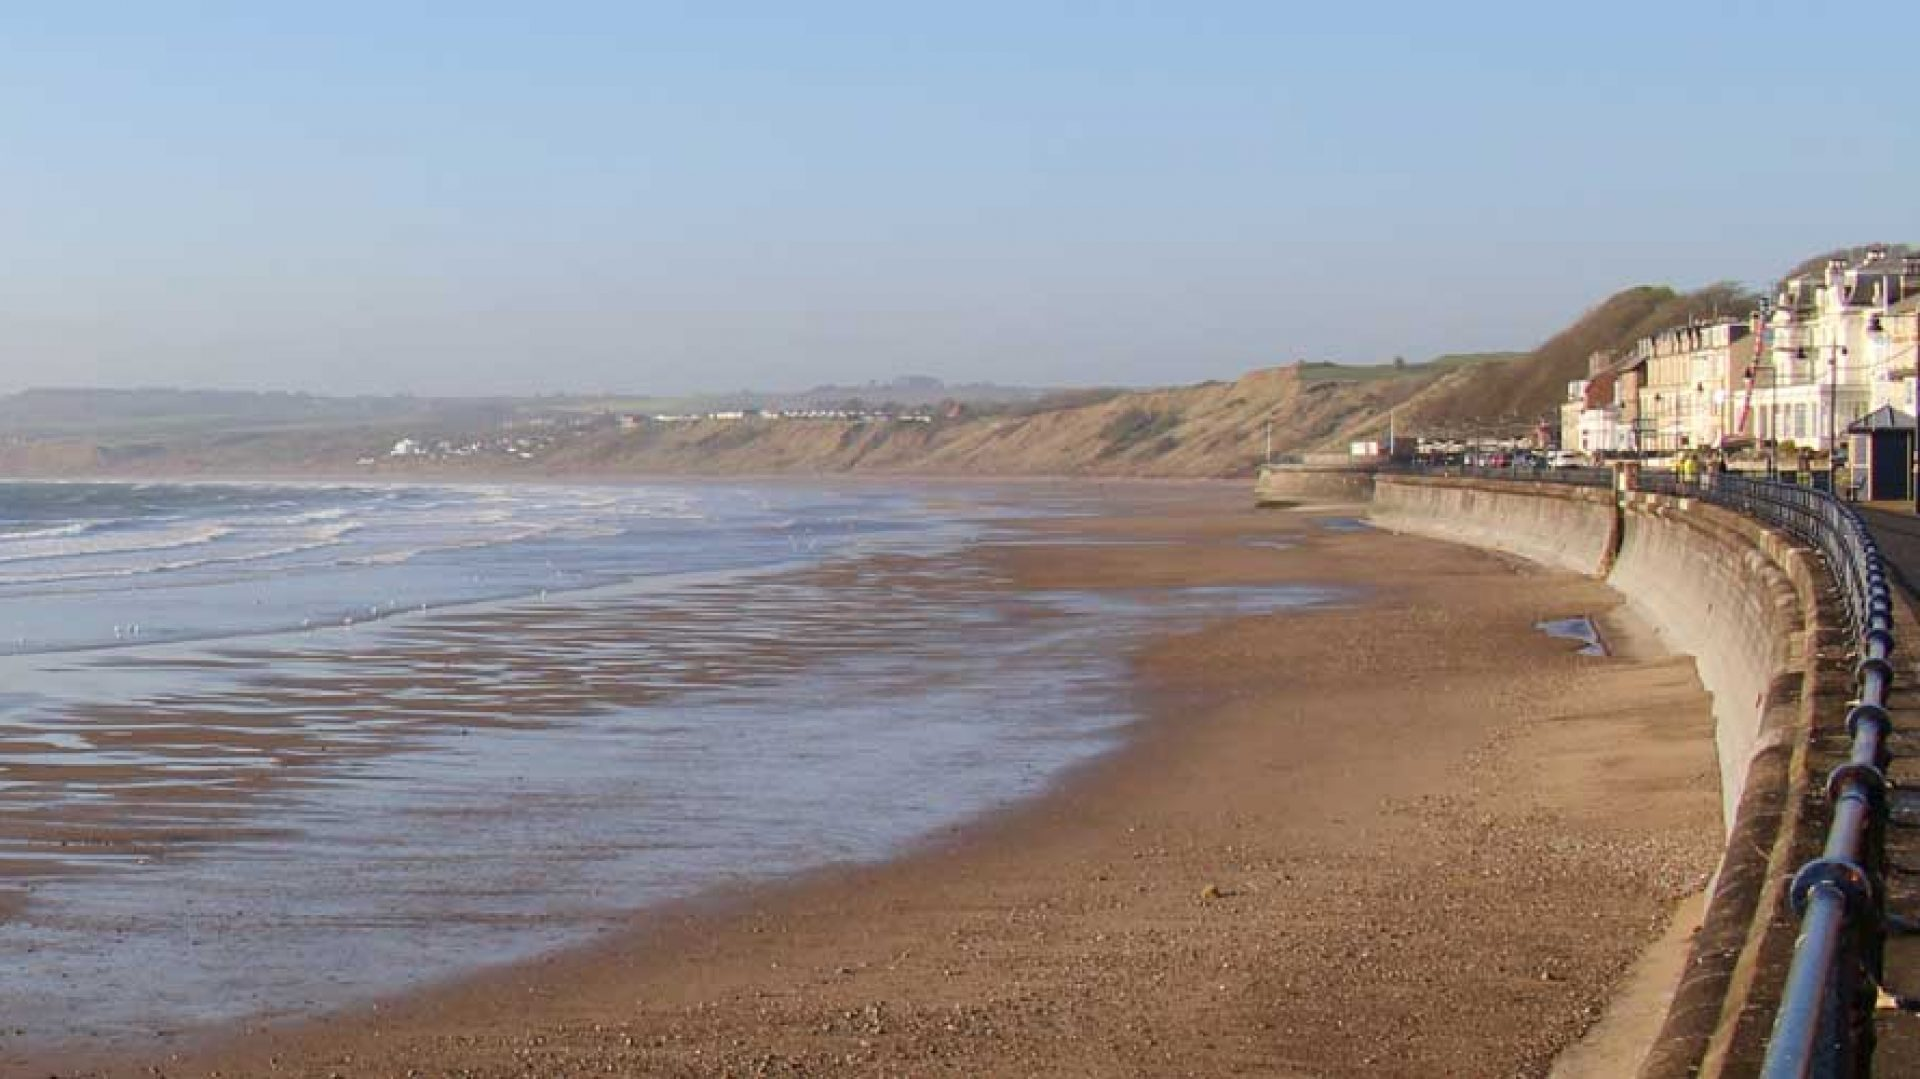 The Landings on Filey Beach